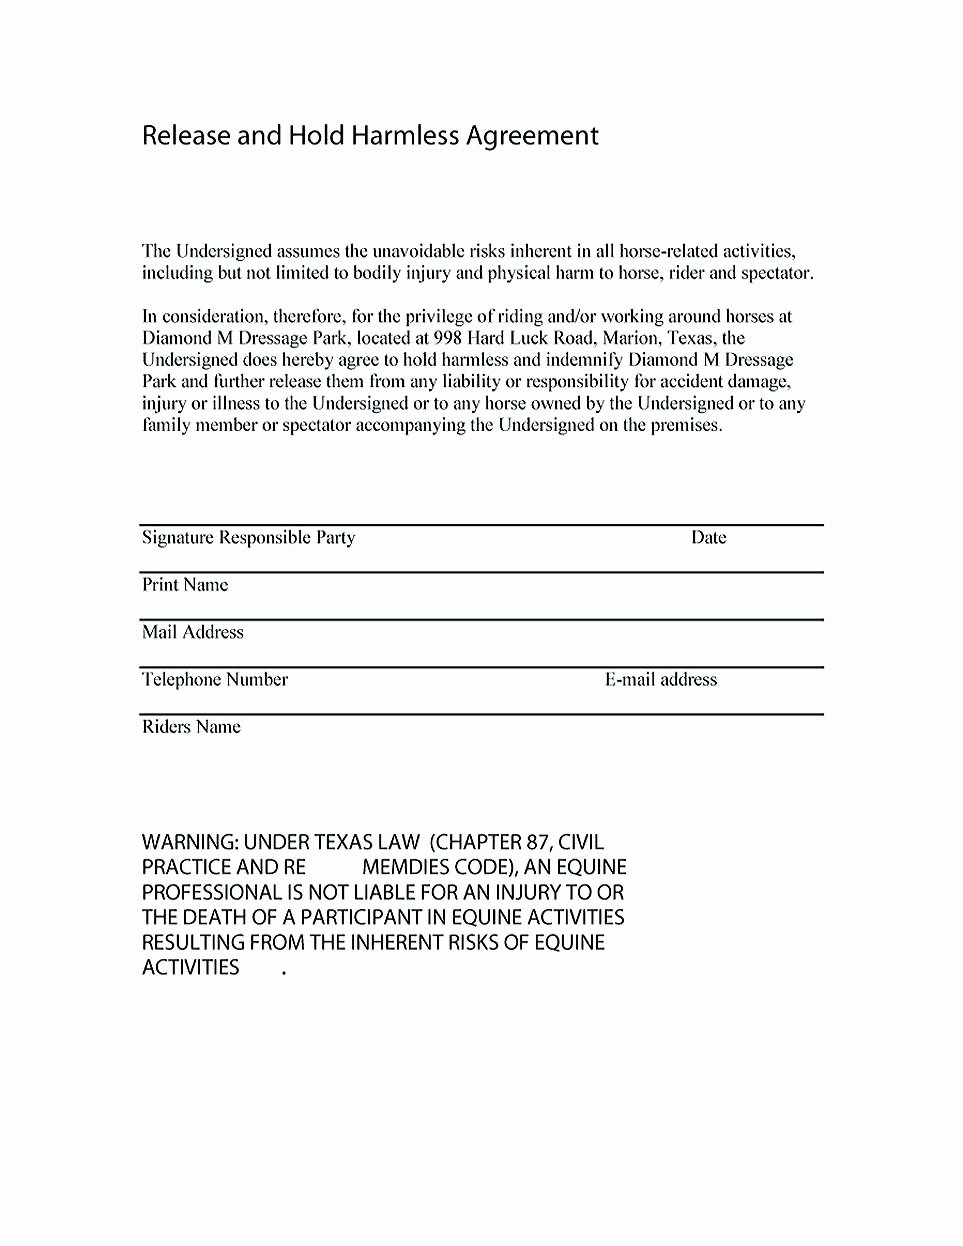 Hold Harmless Agreement Sample Wording Beautiful Making Hold Harmless Agreement Template for Different Purposes